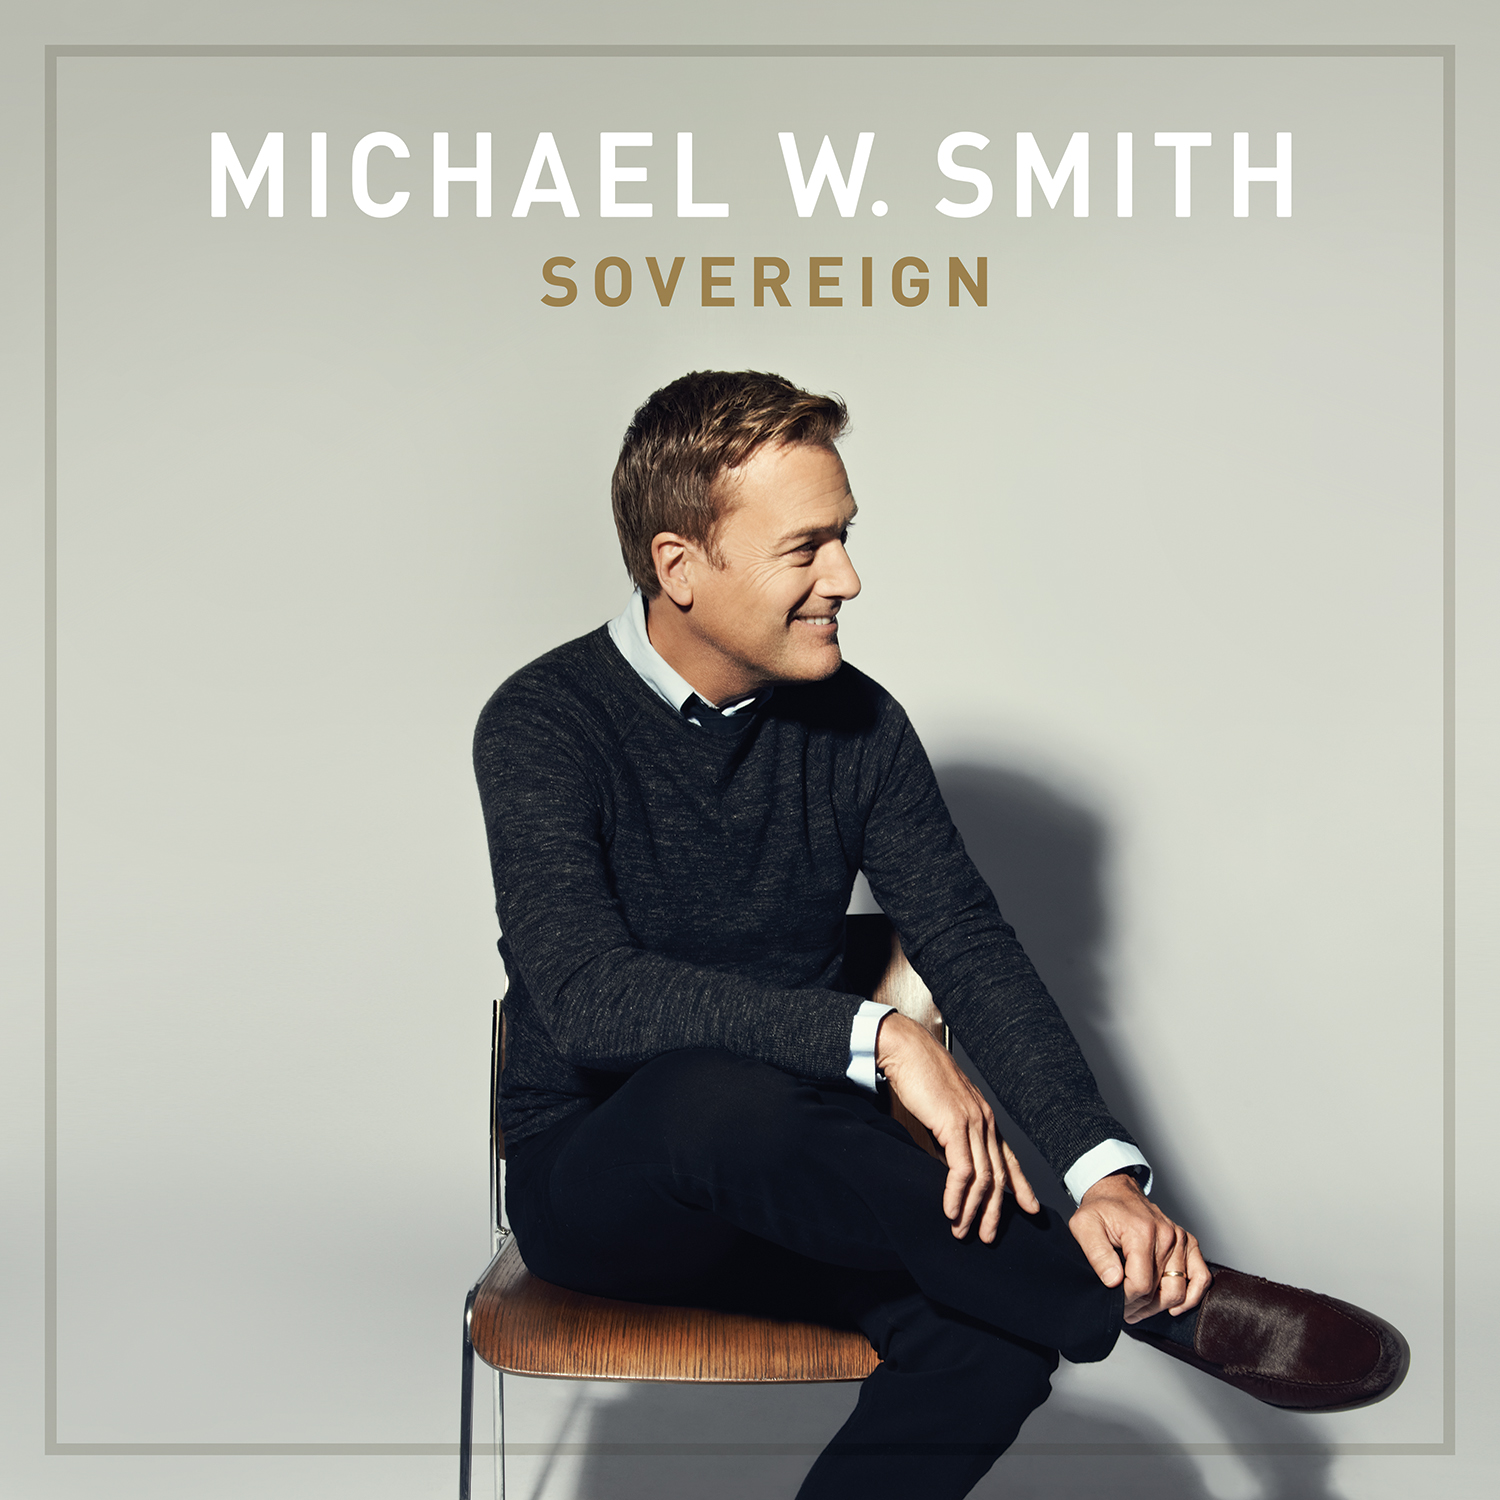 MICHAEL W. SMITH: SOVEREIGN SONGBOOK